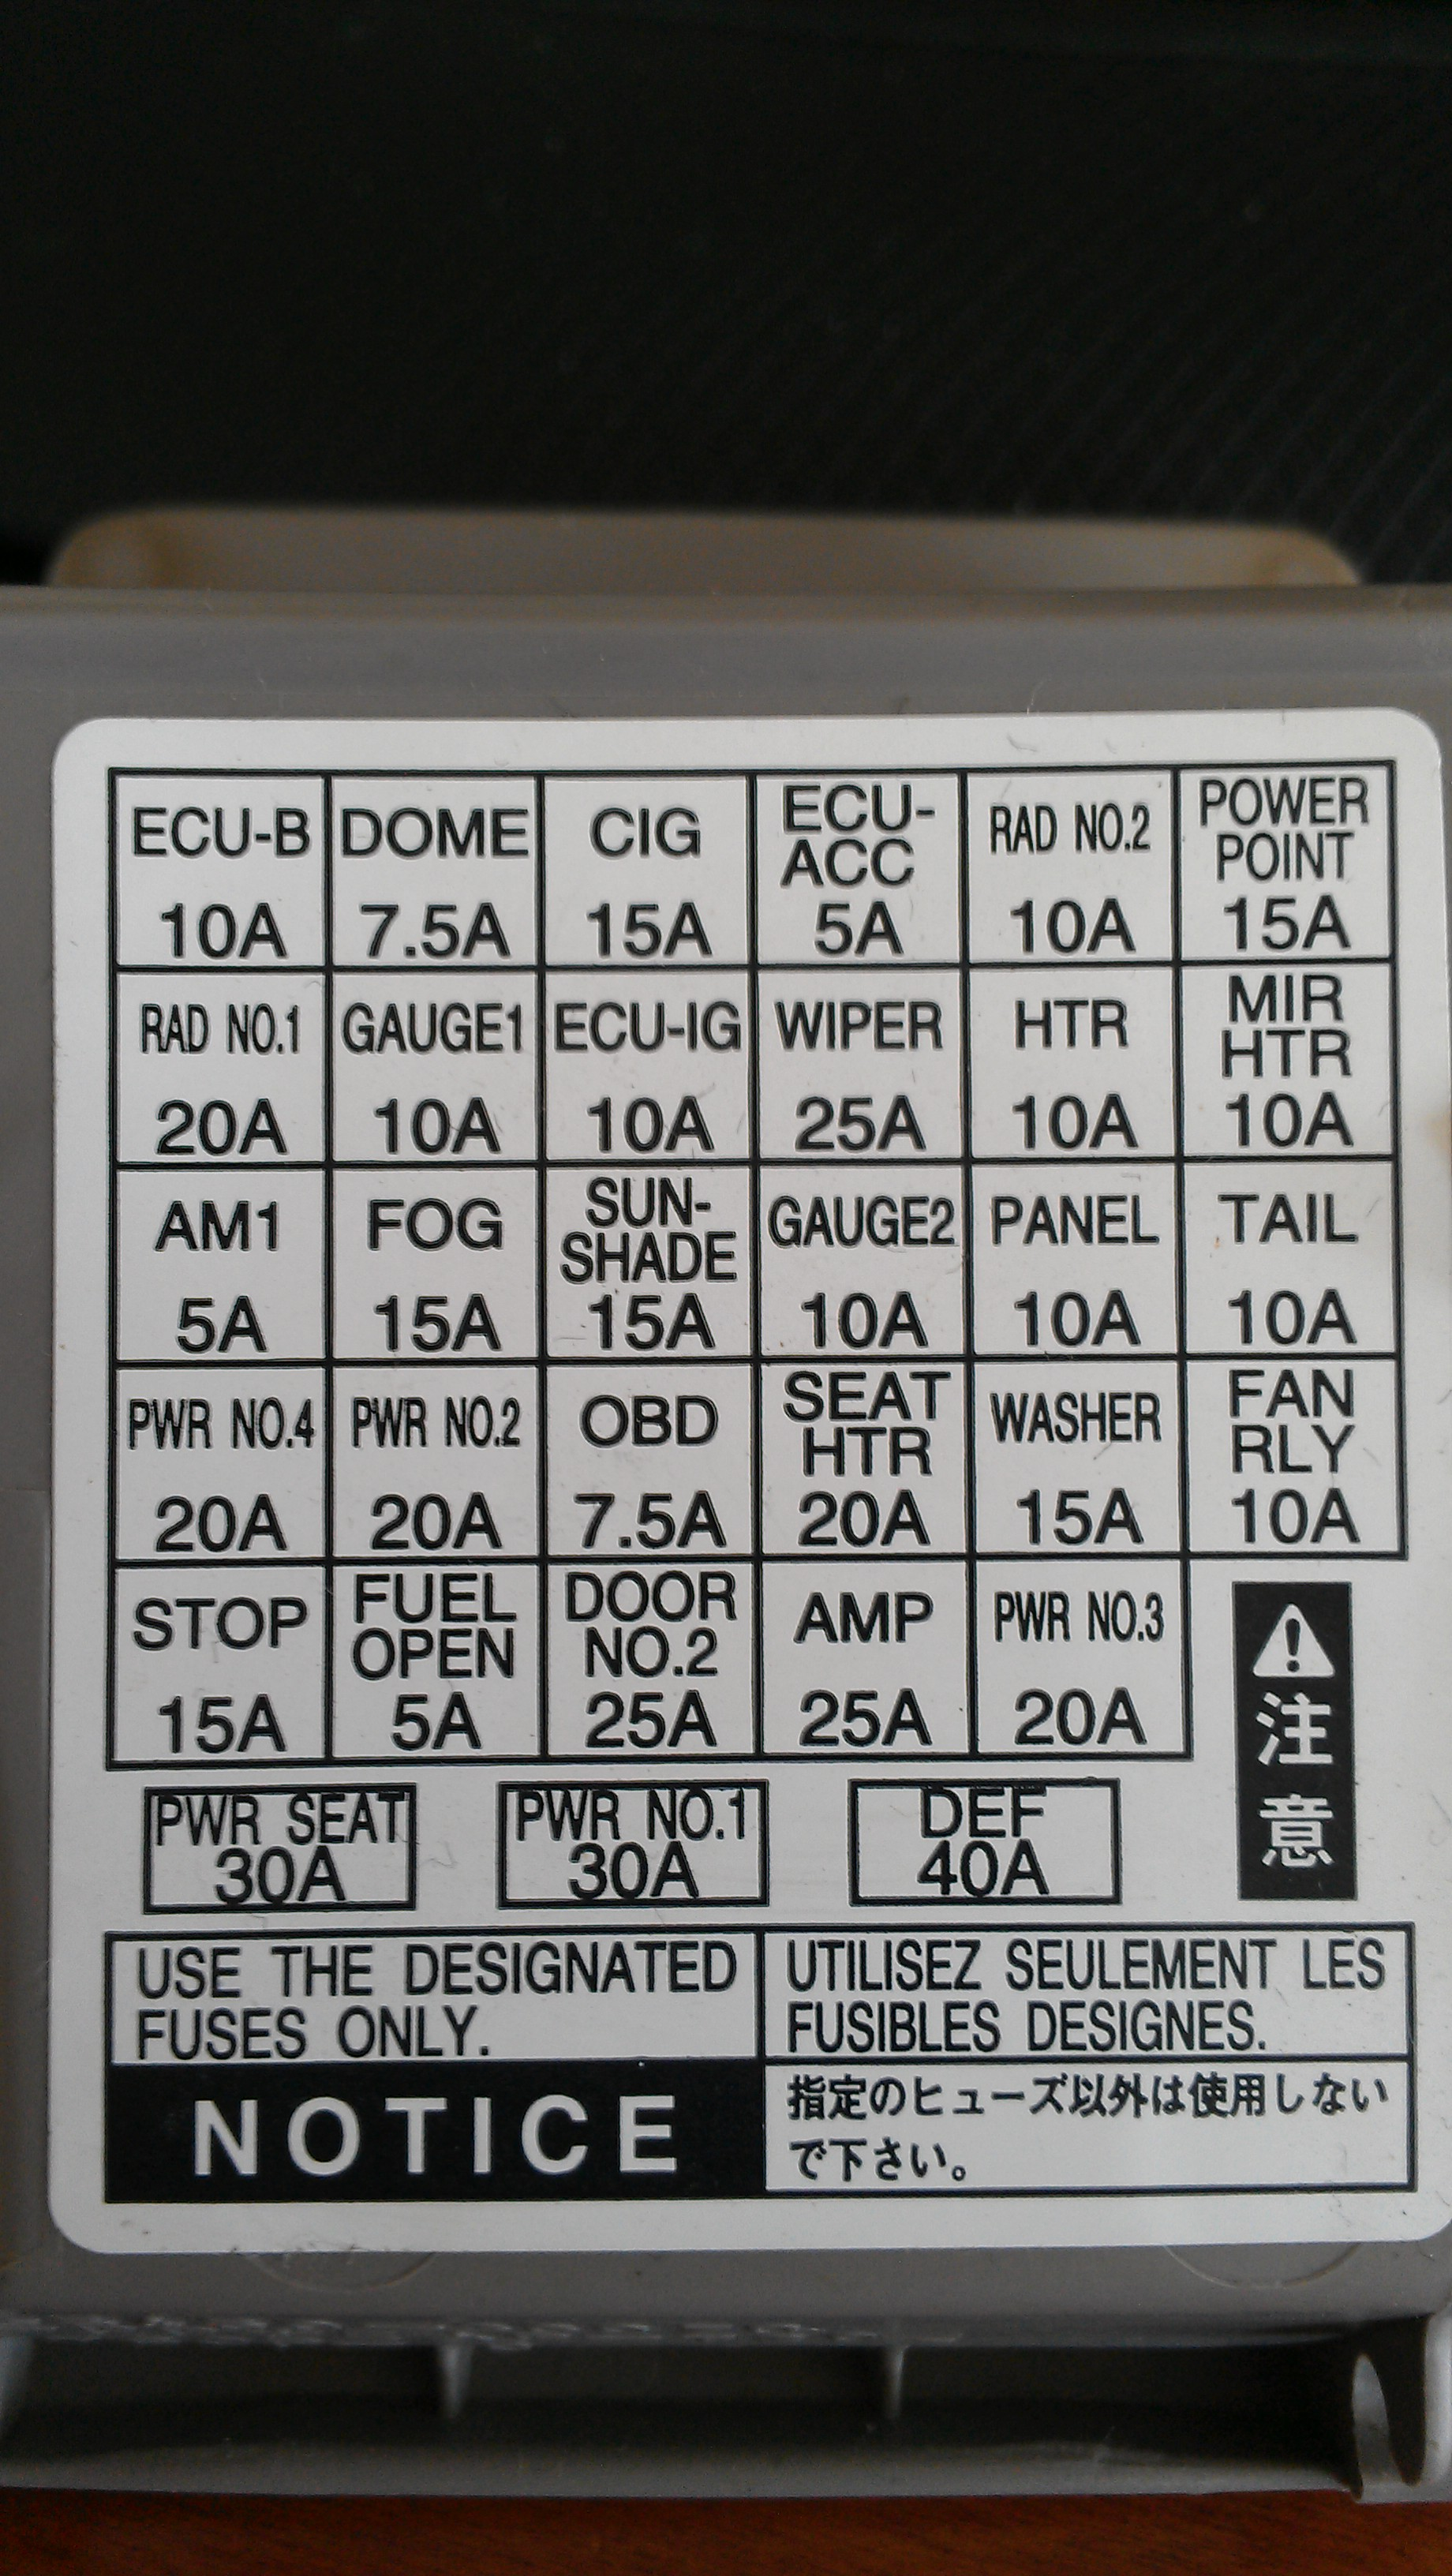 lexus fuse diagram group electrical schemes 1995 Lexus Gs300 Fuse Diagram 93 lexus gs300 fuse diagram list of